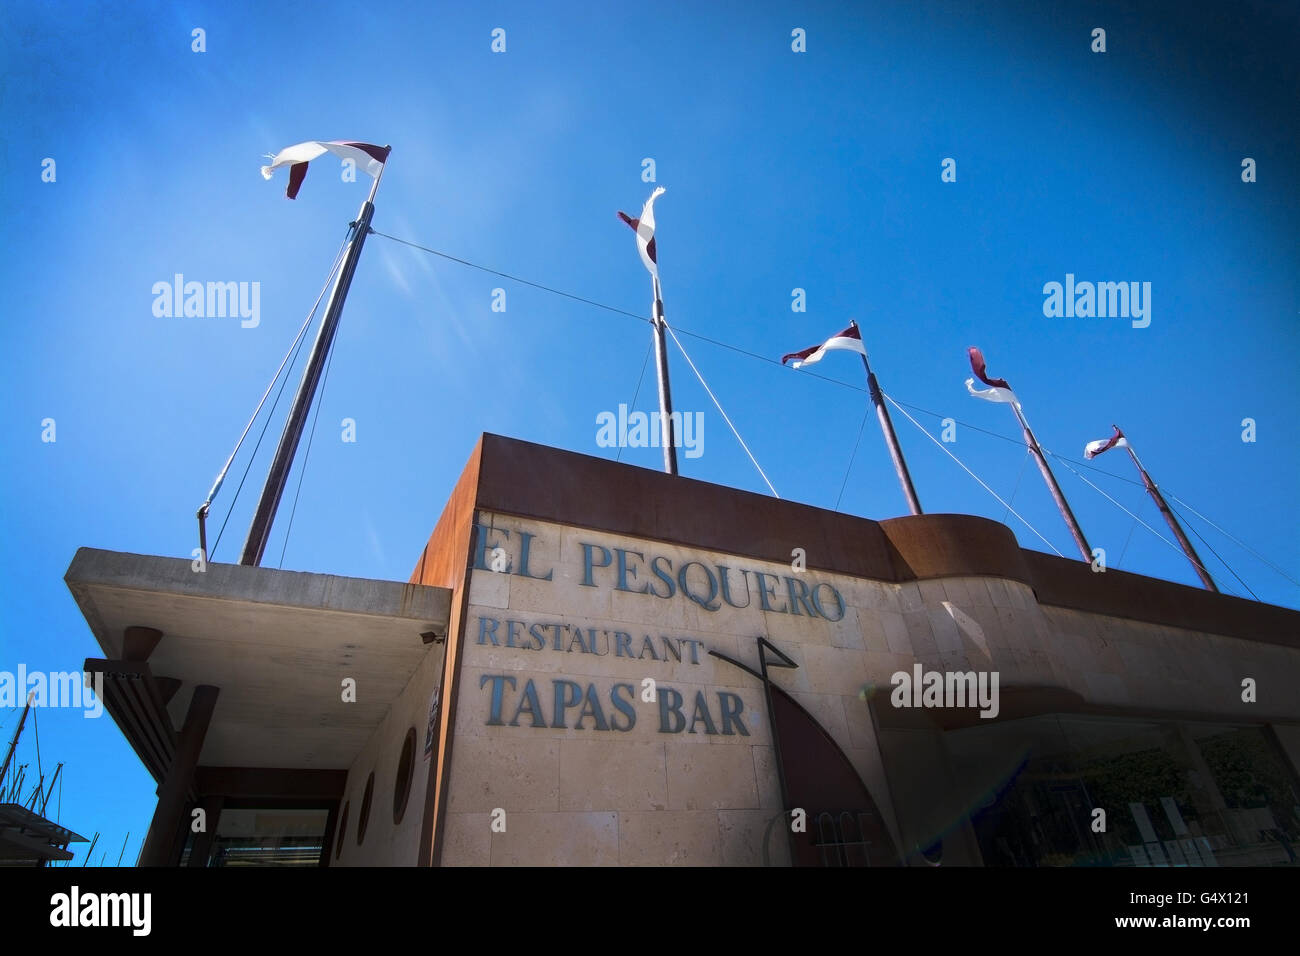 Restaurant tapas bar El Pesquero in Palma de Mallorca, Balearic islands, Spain on April 13, 2016. - Stock Image